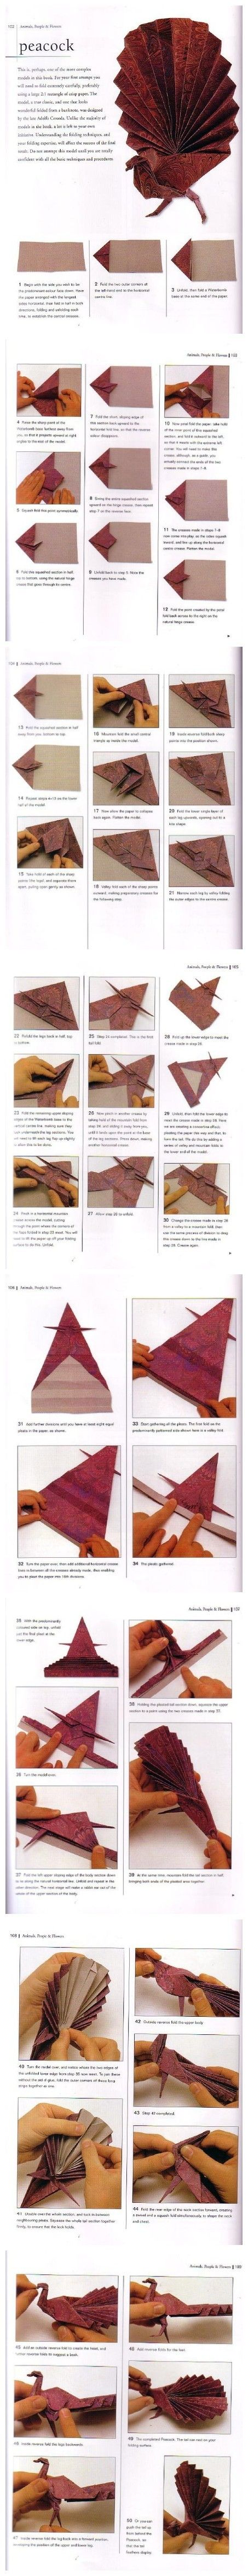 Peacock Origami Paper Crafts Diy Creative Cards Diys All Diagram